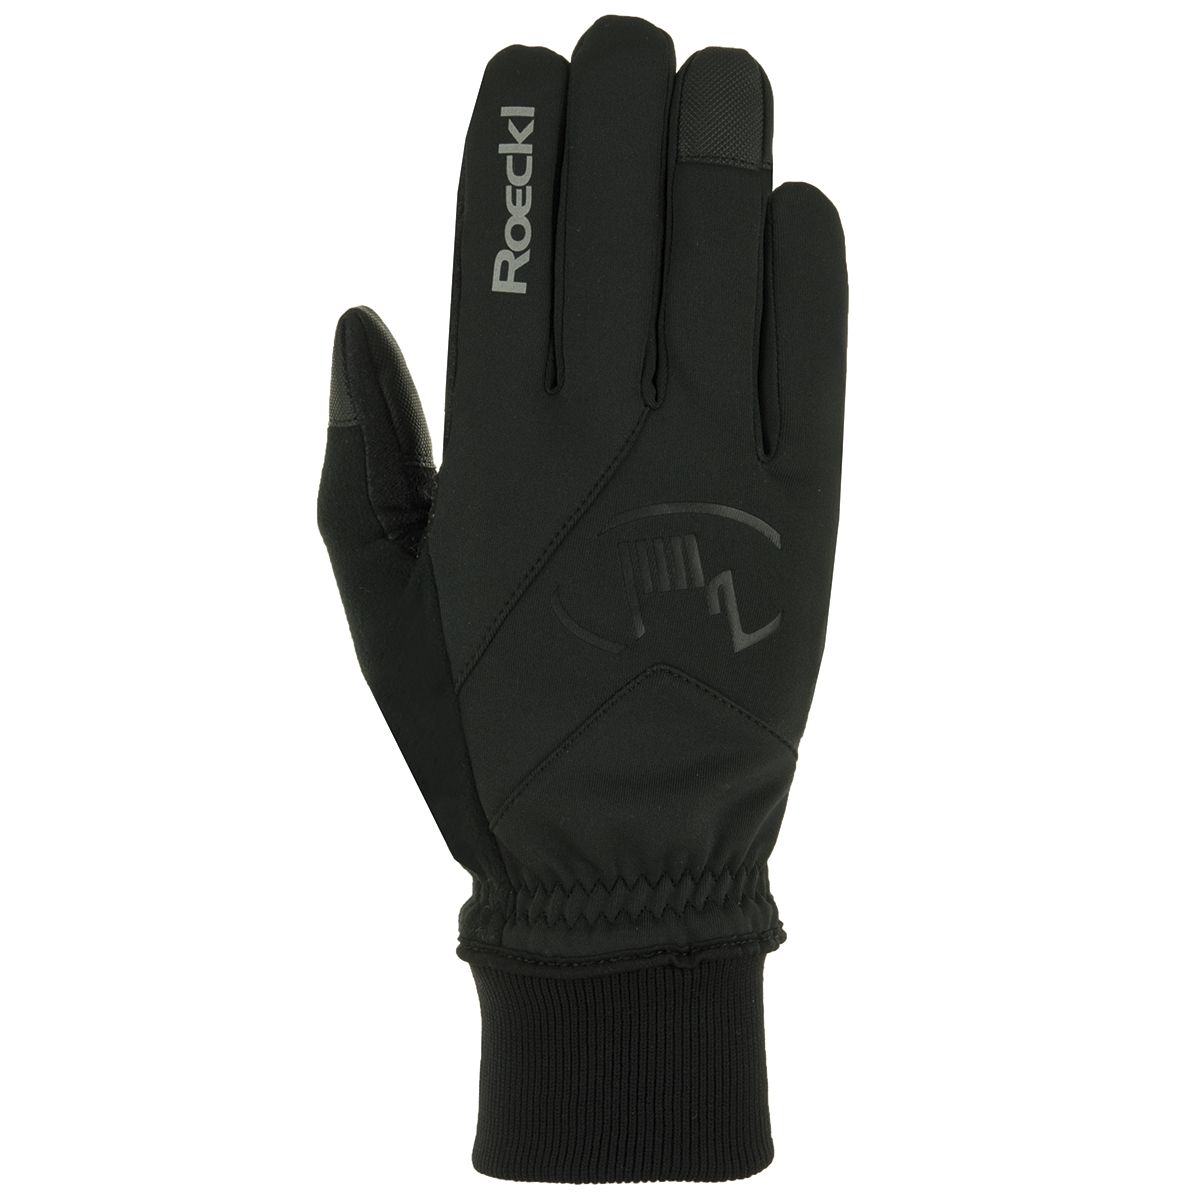 RIEDEN winter cycling gloves